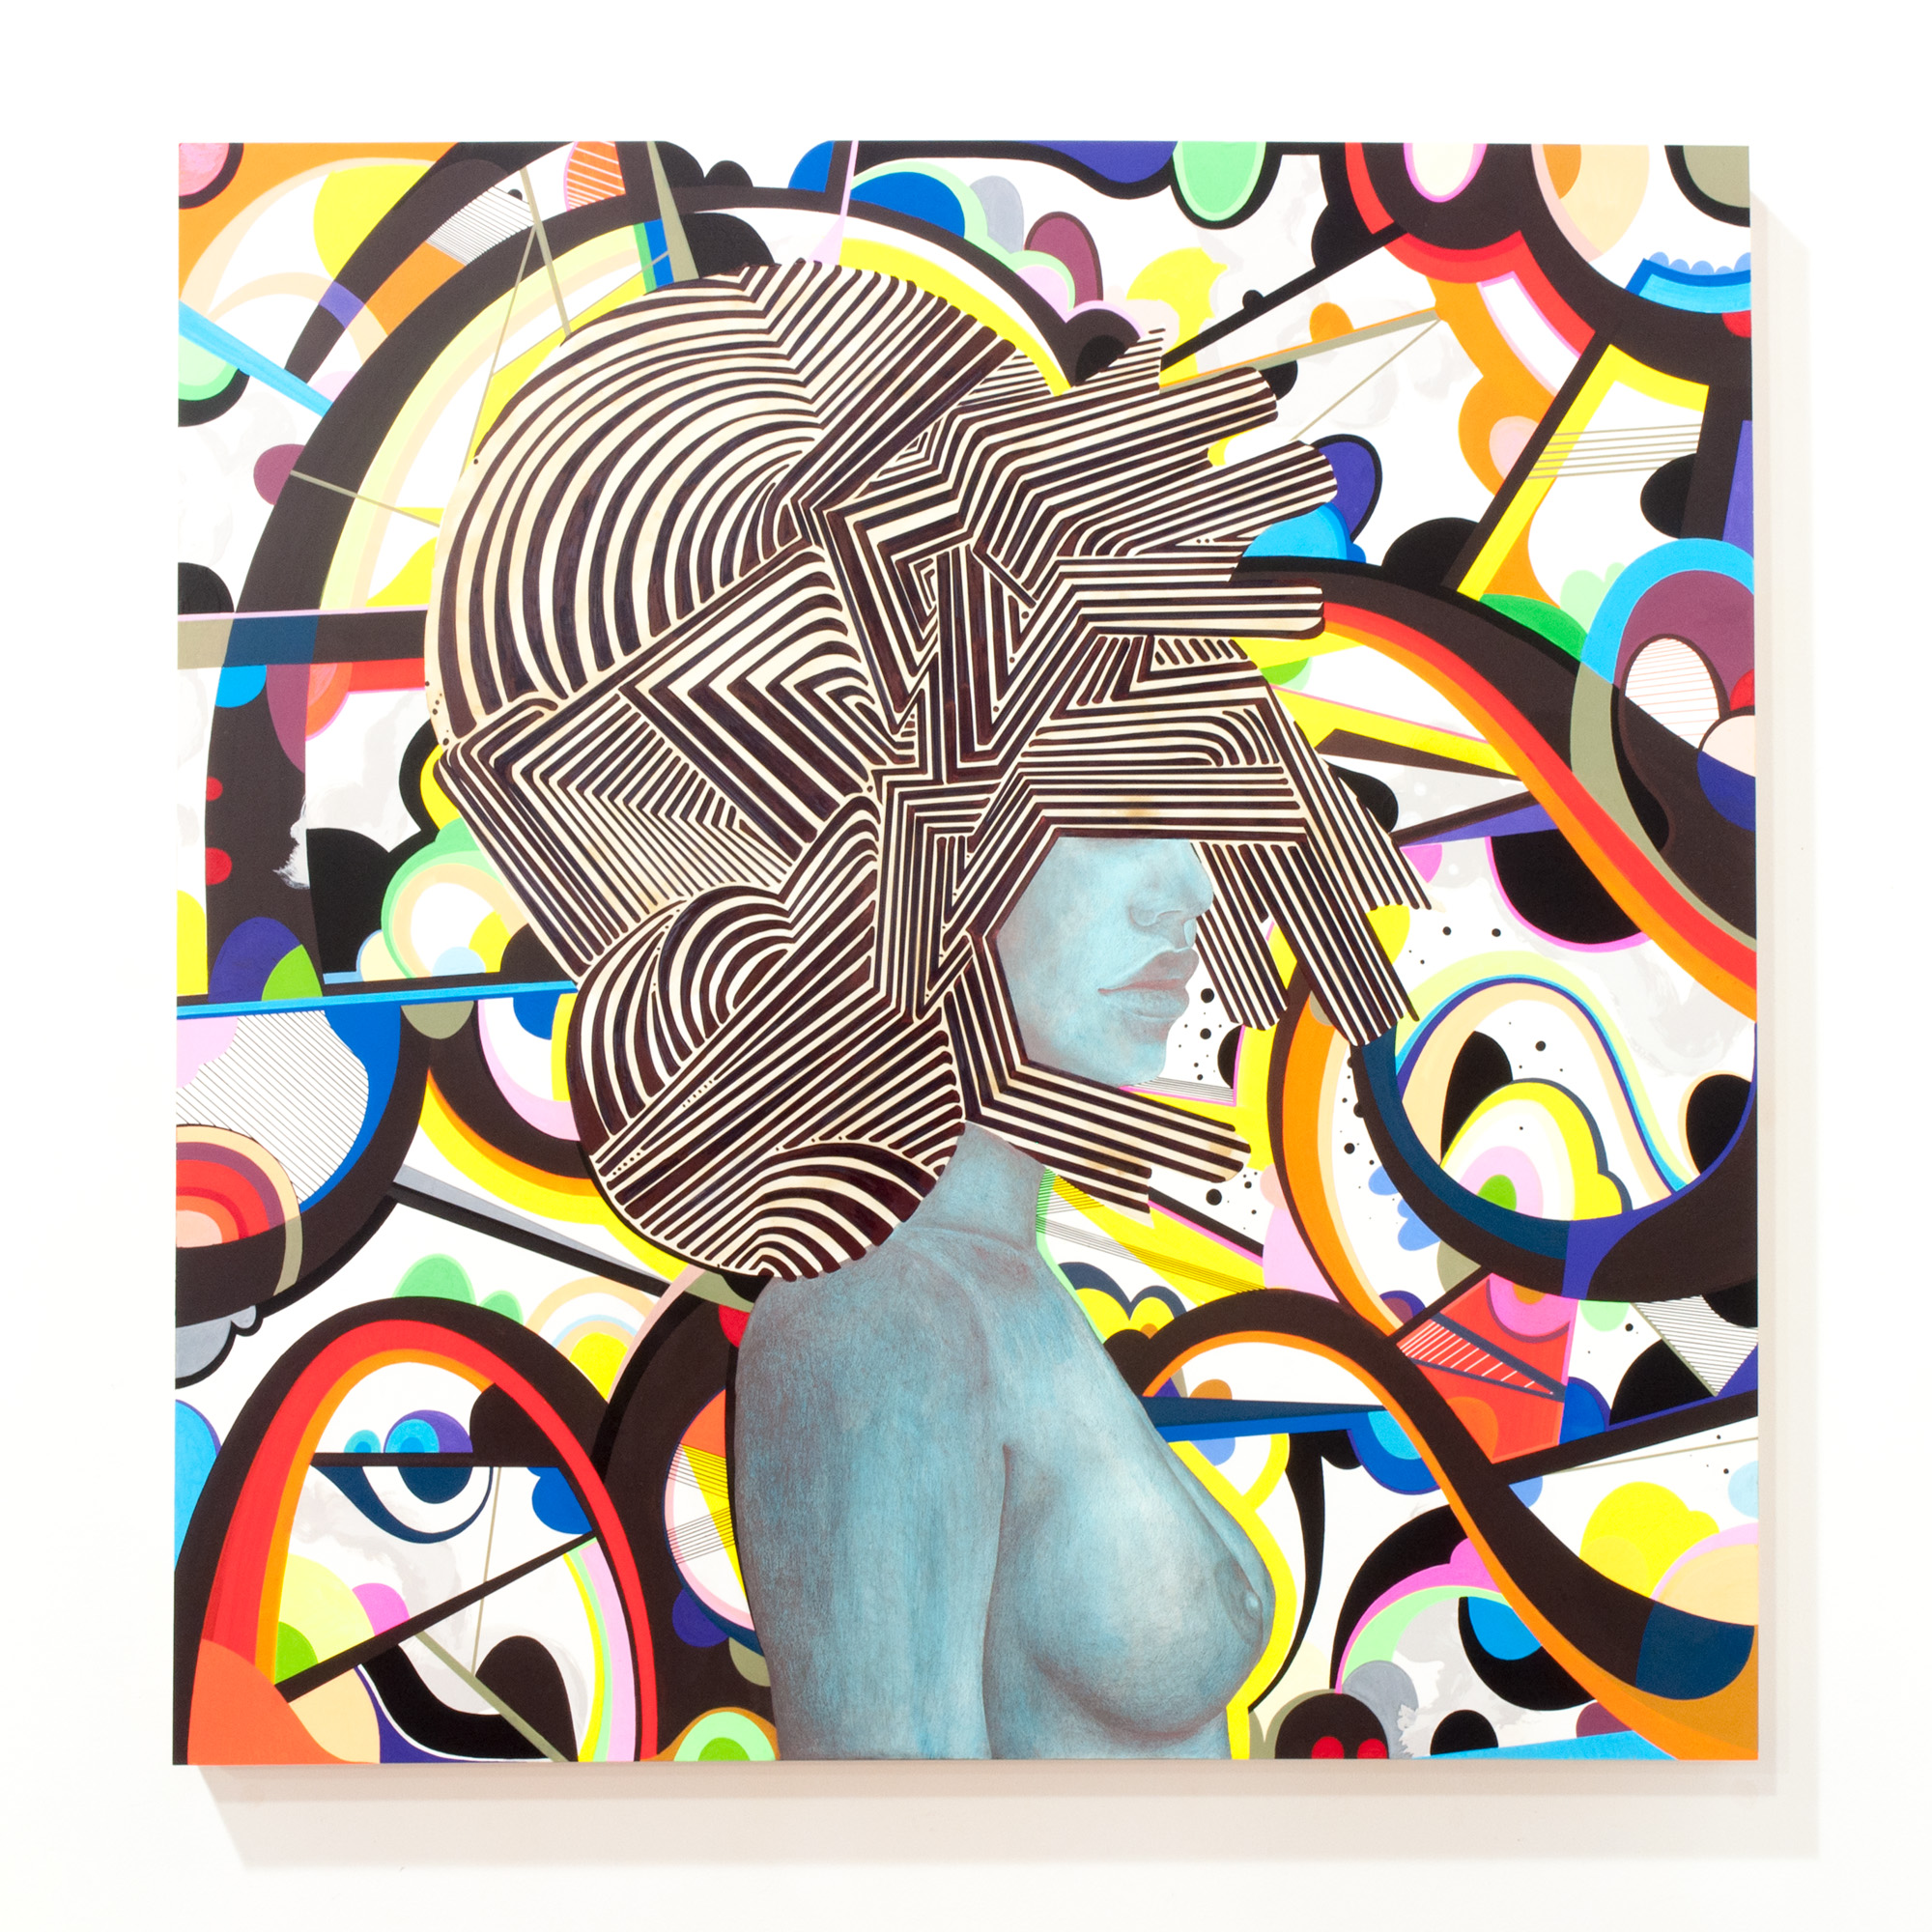 SuperSonic (collab. Lela Brunet) mixed media on wood panel 36 x 36 inches PHA 013G